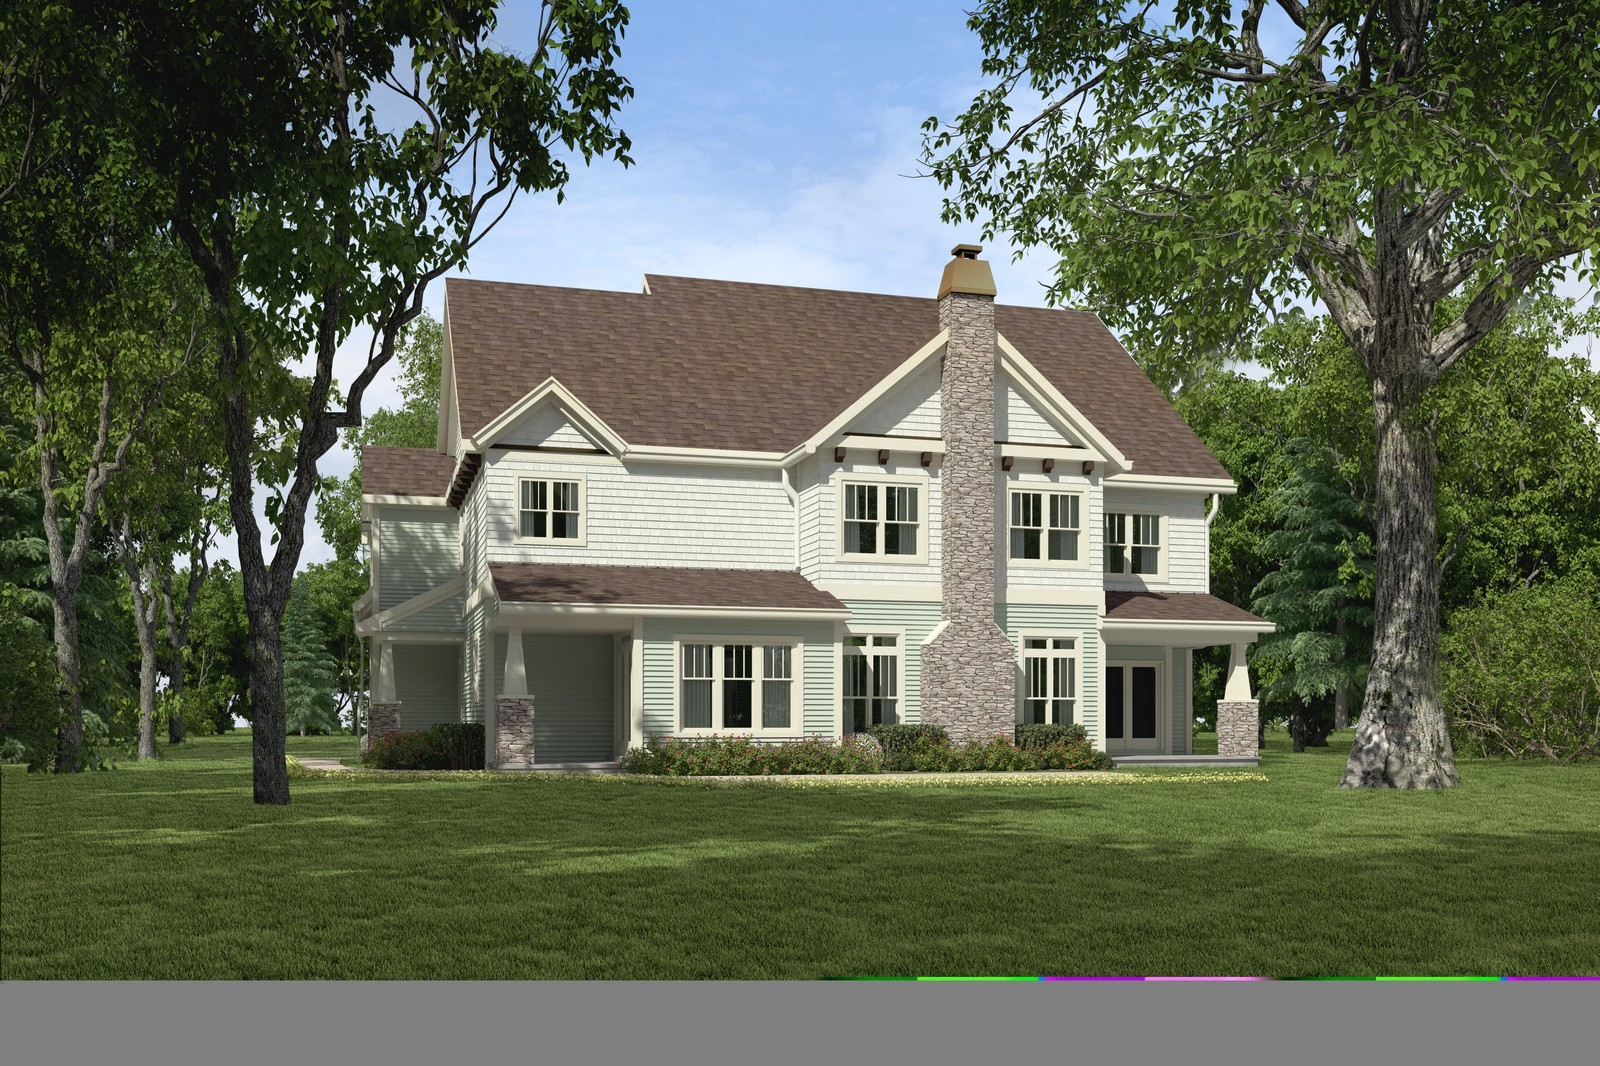 Real Estate Photography - 231 Woodlawn Ave, Winnetka, IL, 60093 - Back View of 231 Woodlawn Ave, Glencoe